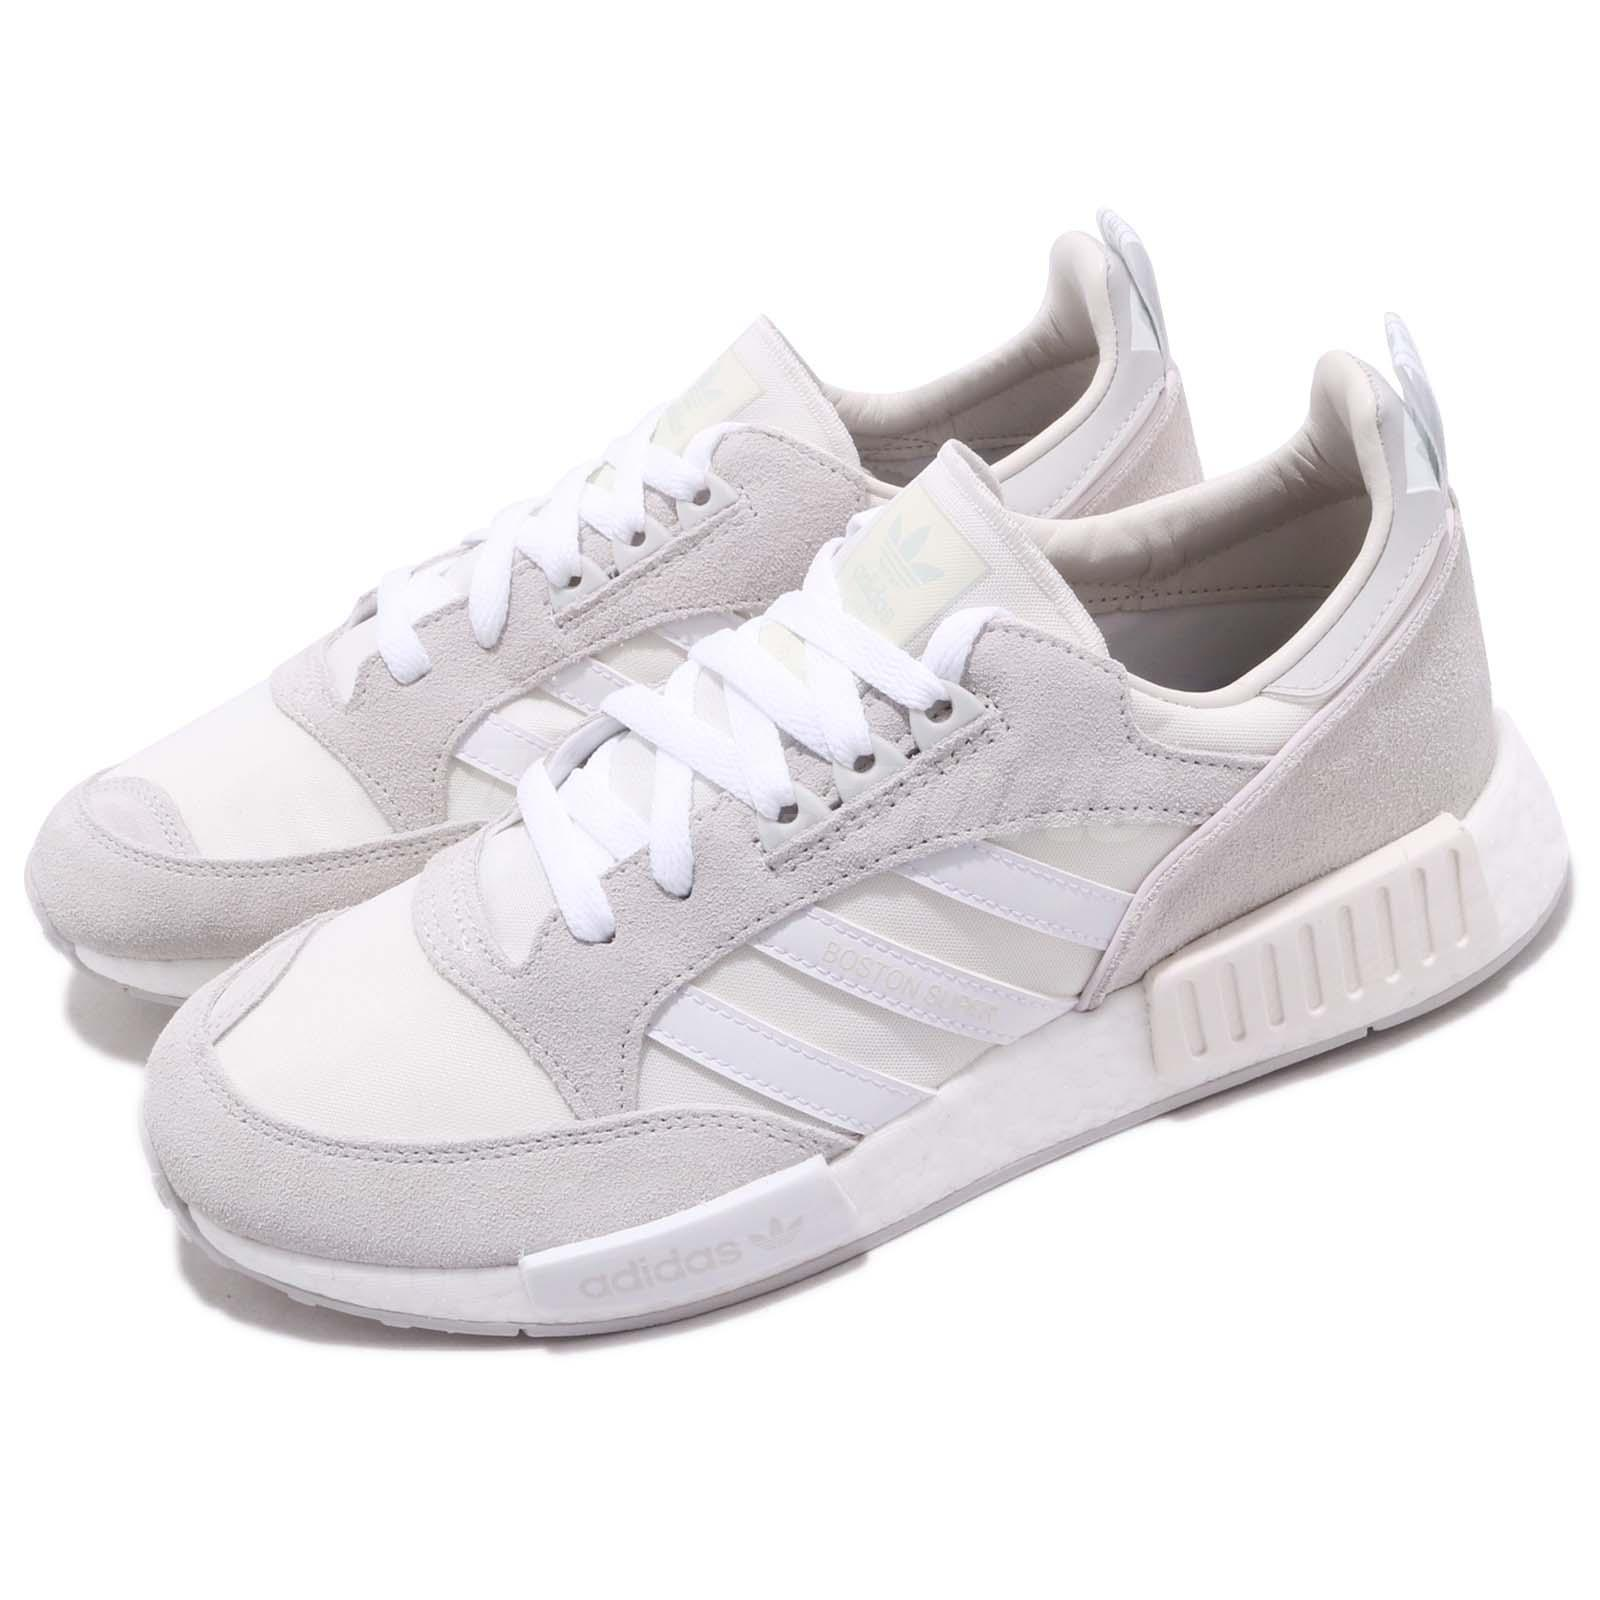 free shipping 8a08e c17df Details about adidas Originals Boston Super X R1 NMD Never Made Pack White  Men Shoes G27834